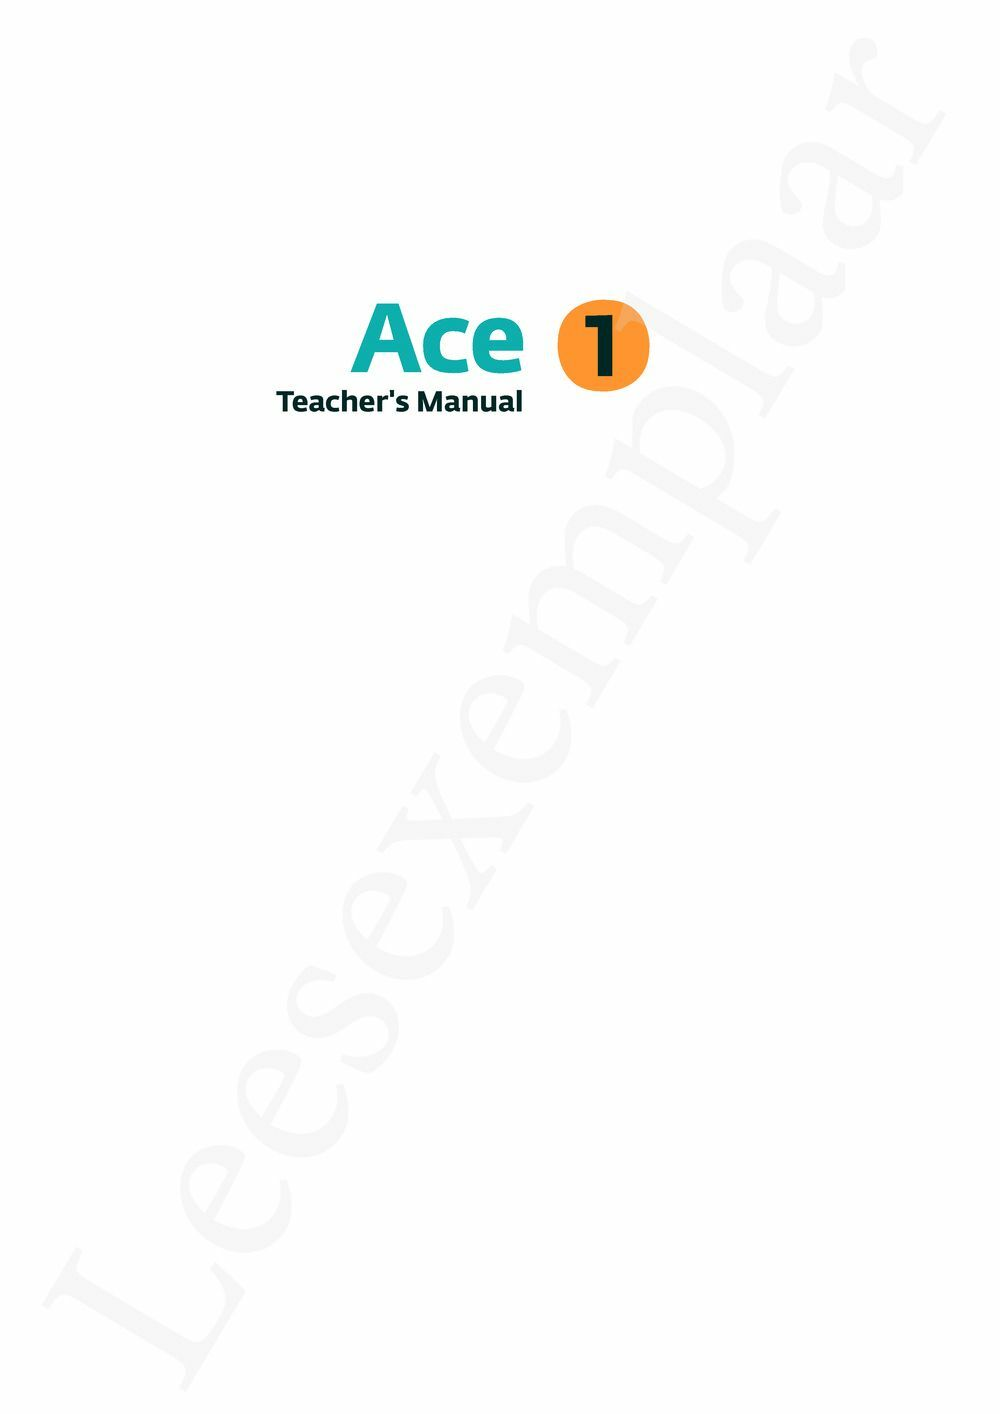 Preview: Ace 1 Teacher's Manual